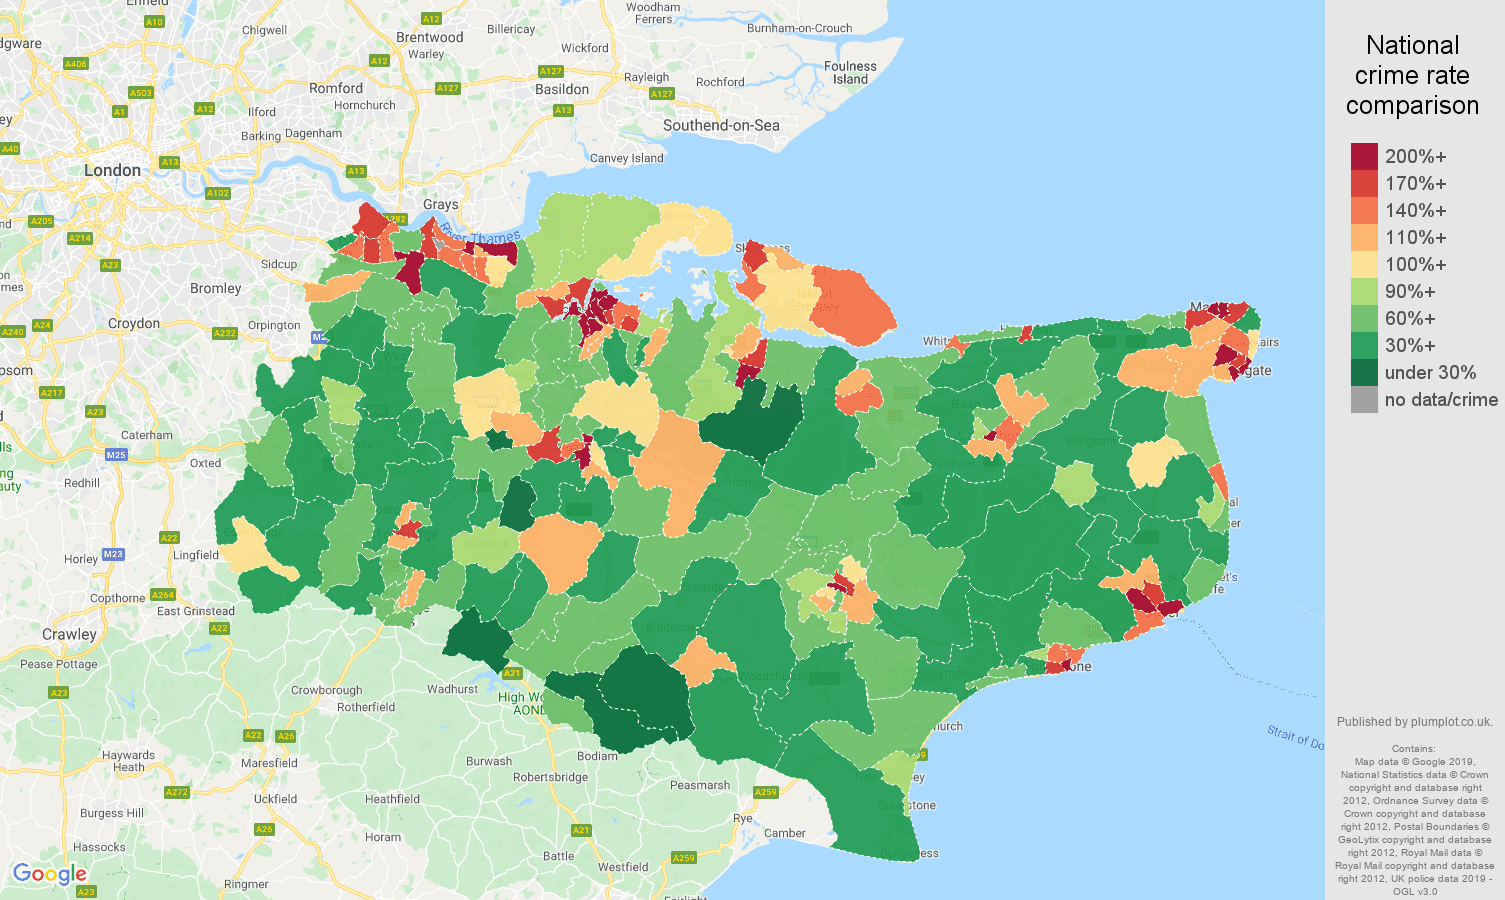 Kent public order crime rate comparison map